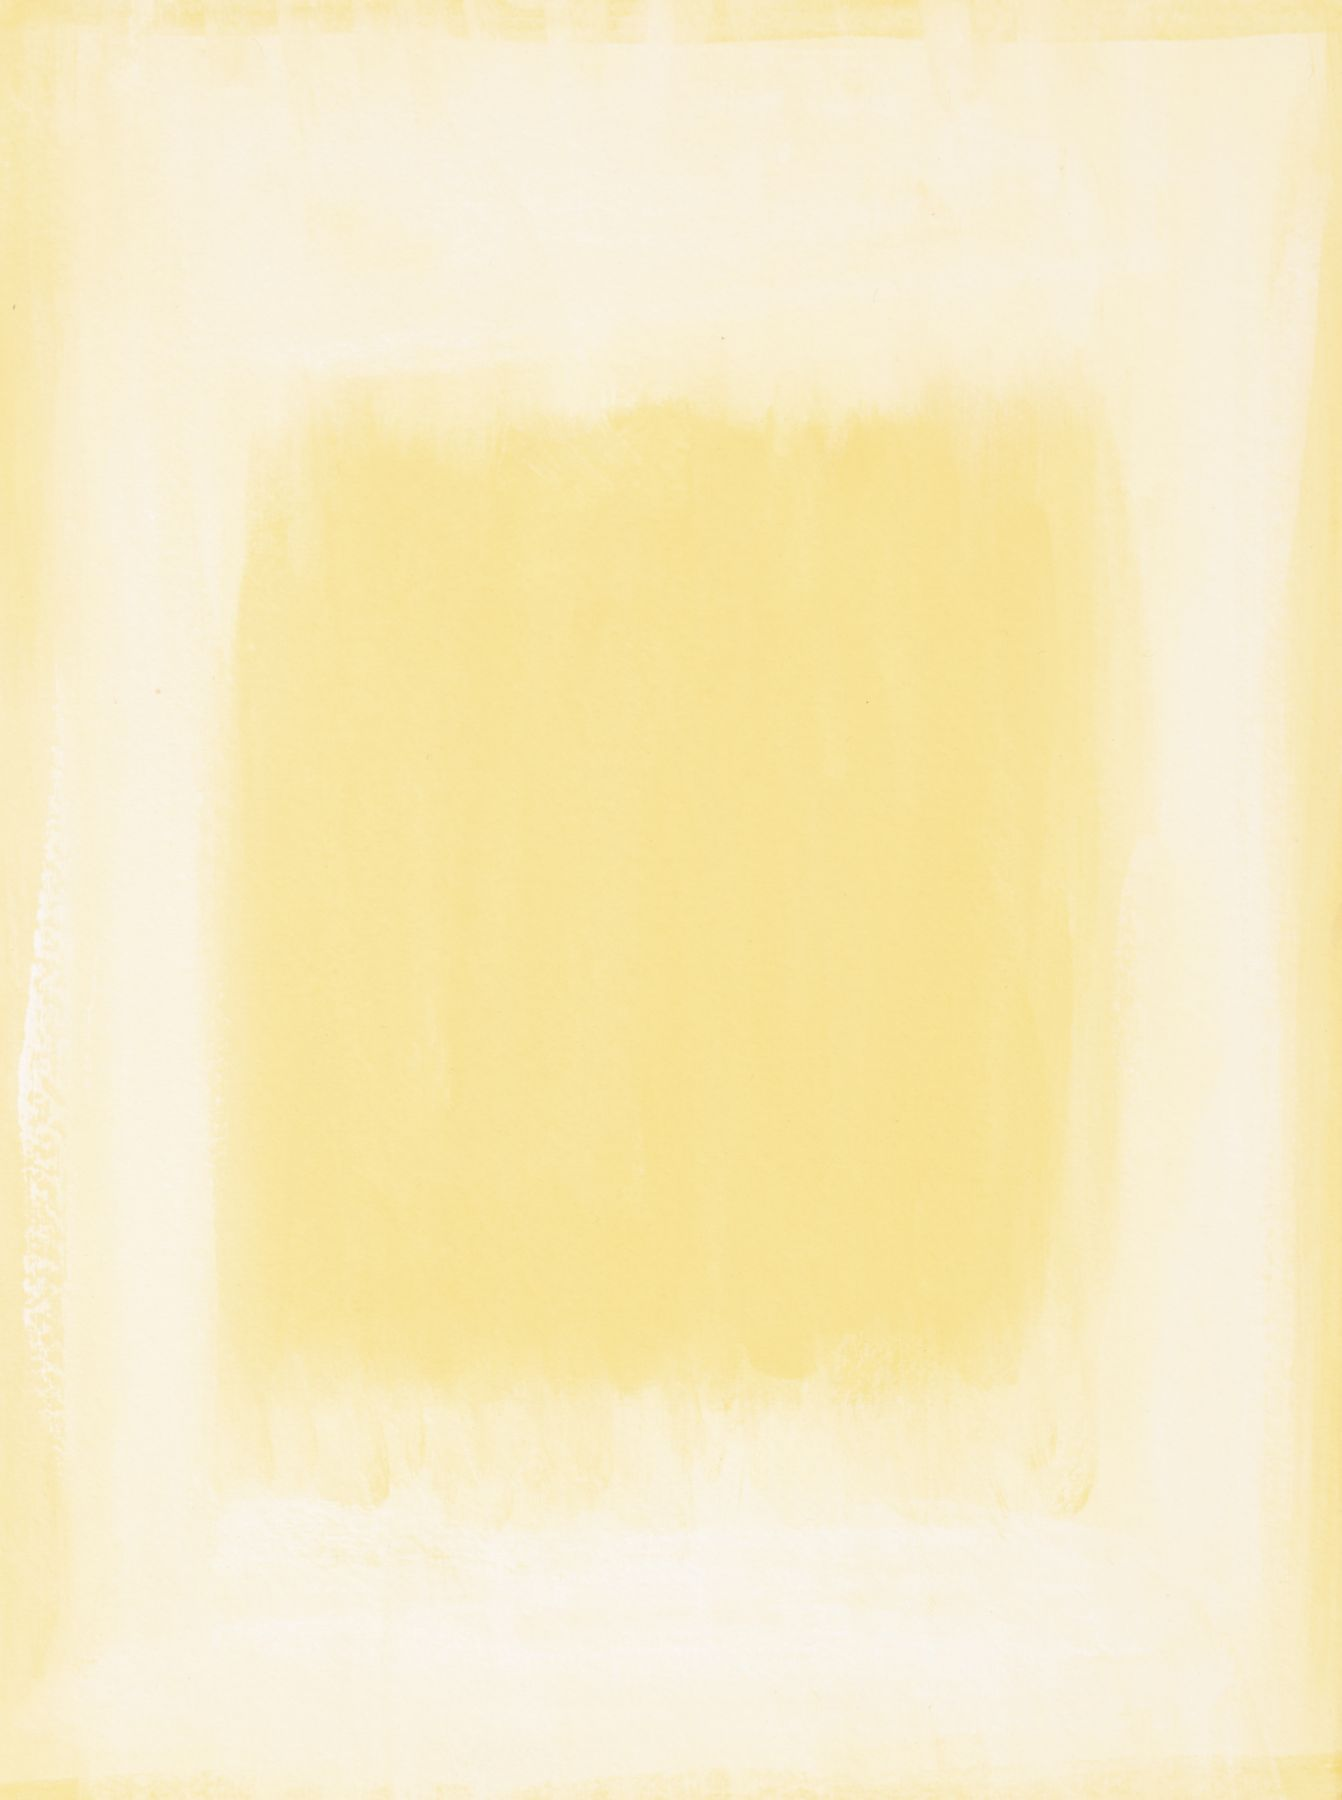 Felrath Hines, Untitled,  Watercolor on paper, 7.75 x 6 inches, Unsigned. Pale yellow rectangle with organic yellow rectangle in the center of the frame. Felrath Hines worked to create universal visual idioms from a place of complex personal experience. His figurative and cubist-style artwork morphed into soft-edged organic abstracts as he grappled with hues in his chosen oil medium.